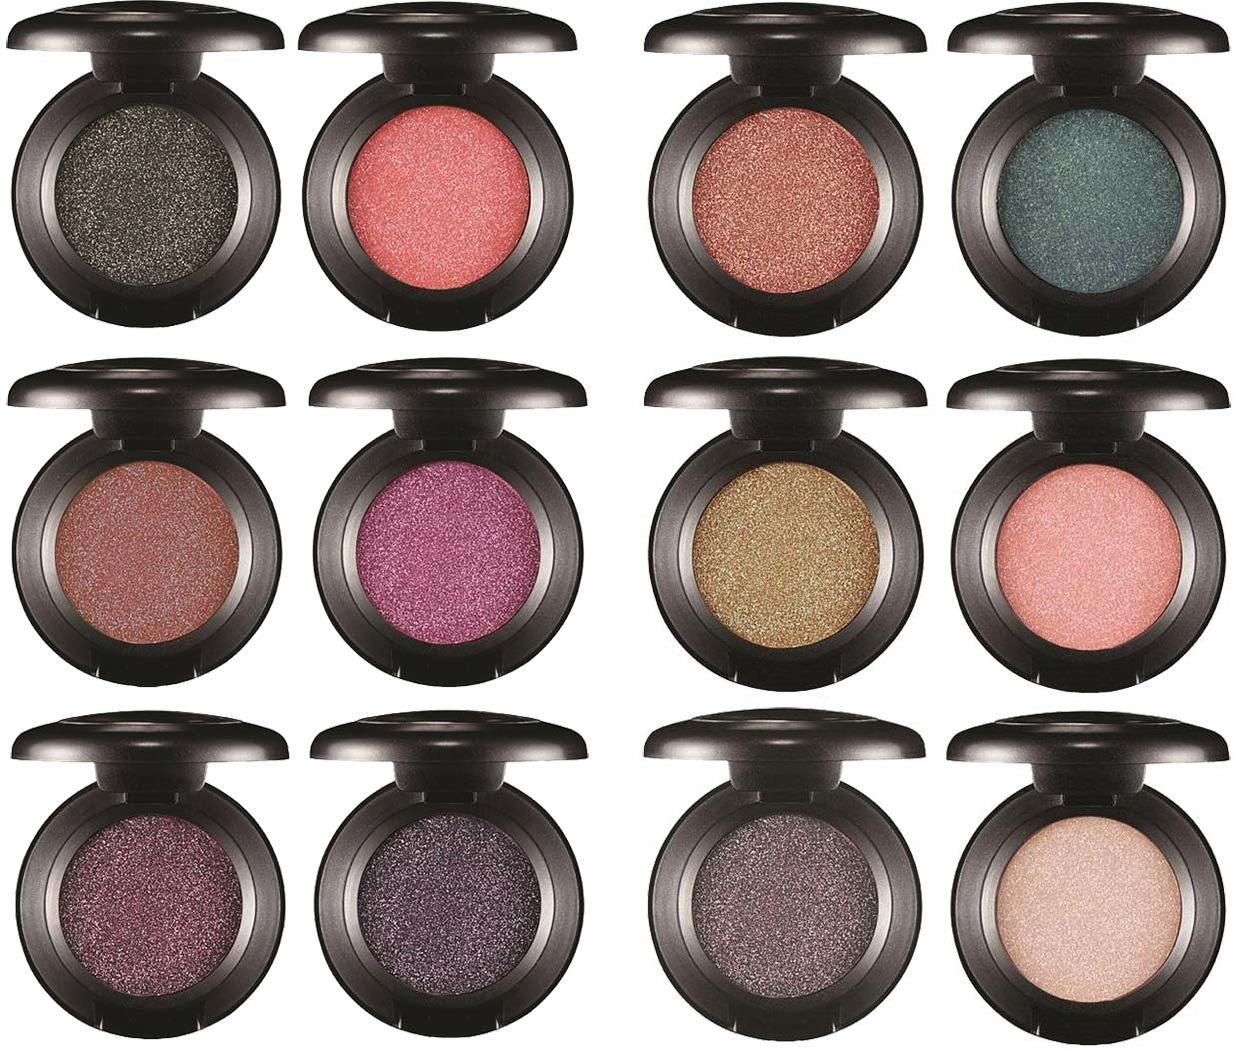 mac-le-disko-collection-summer-2015.jpg